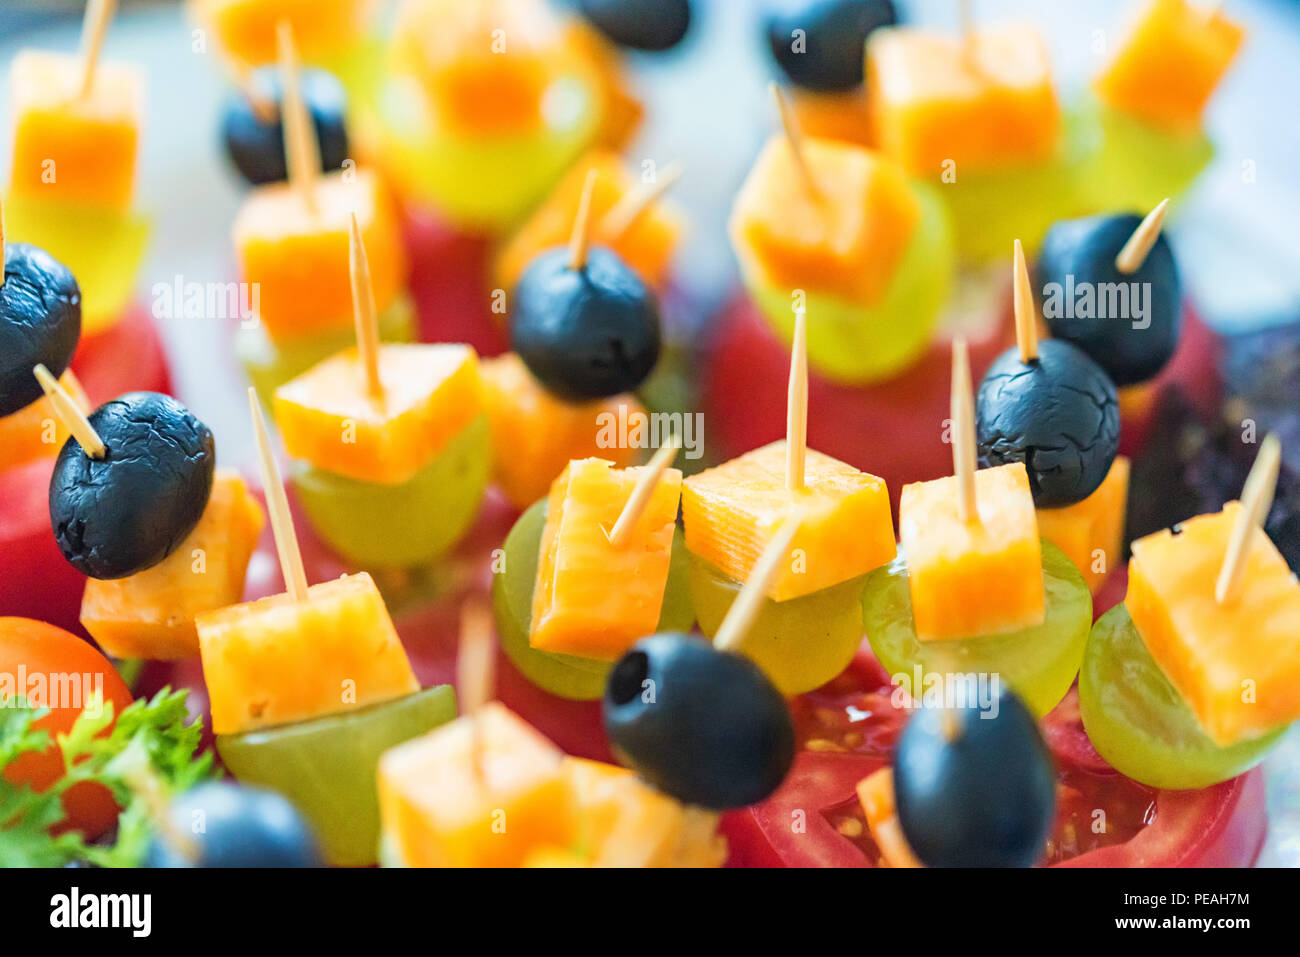 Appetizer of cheese cubes, grapes and tomato - Stock Image